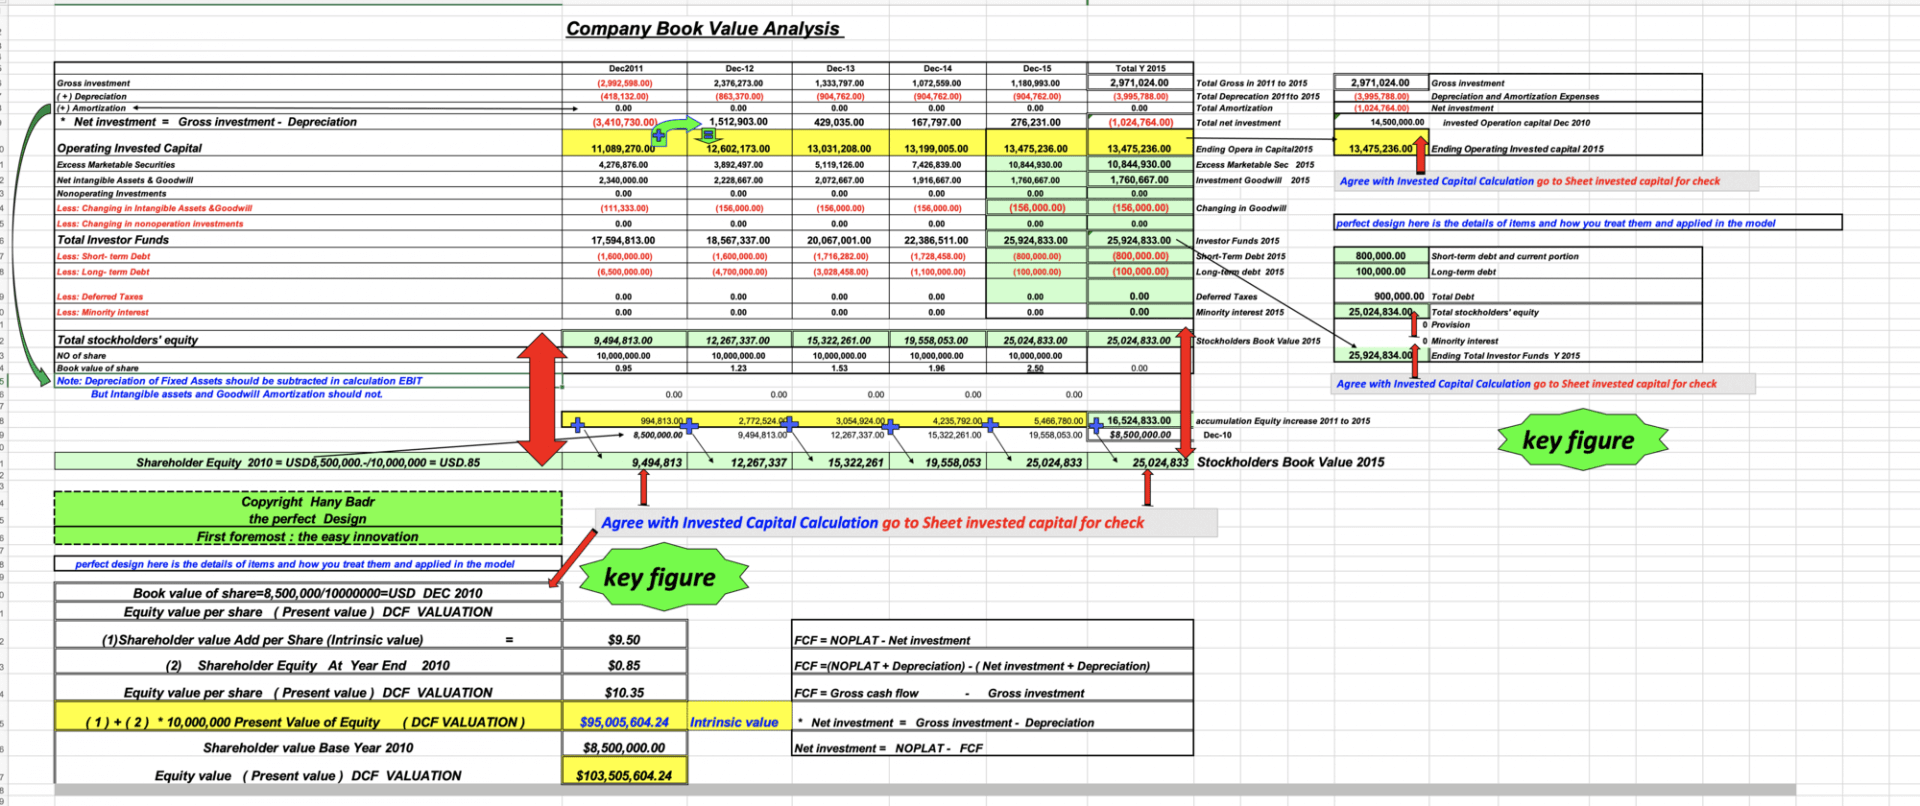 Complete EVA & DCF Model (Economic Value Added & Discounted Cash Flow) - Templarket -  Business Templates Marketplace